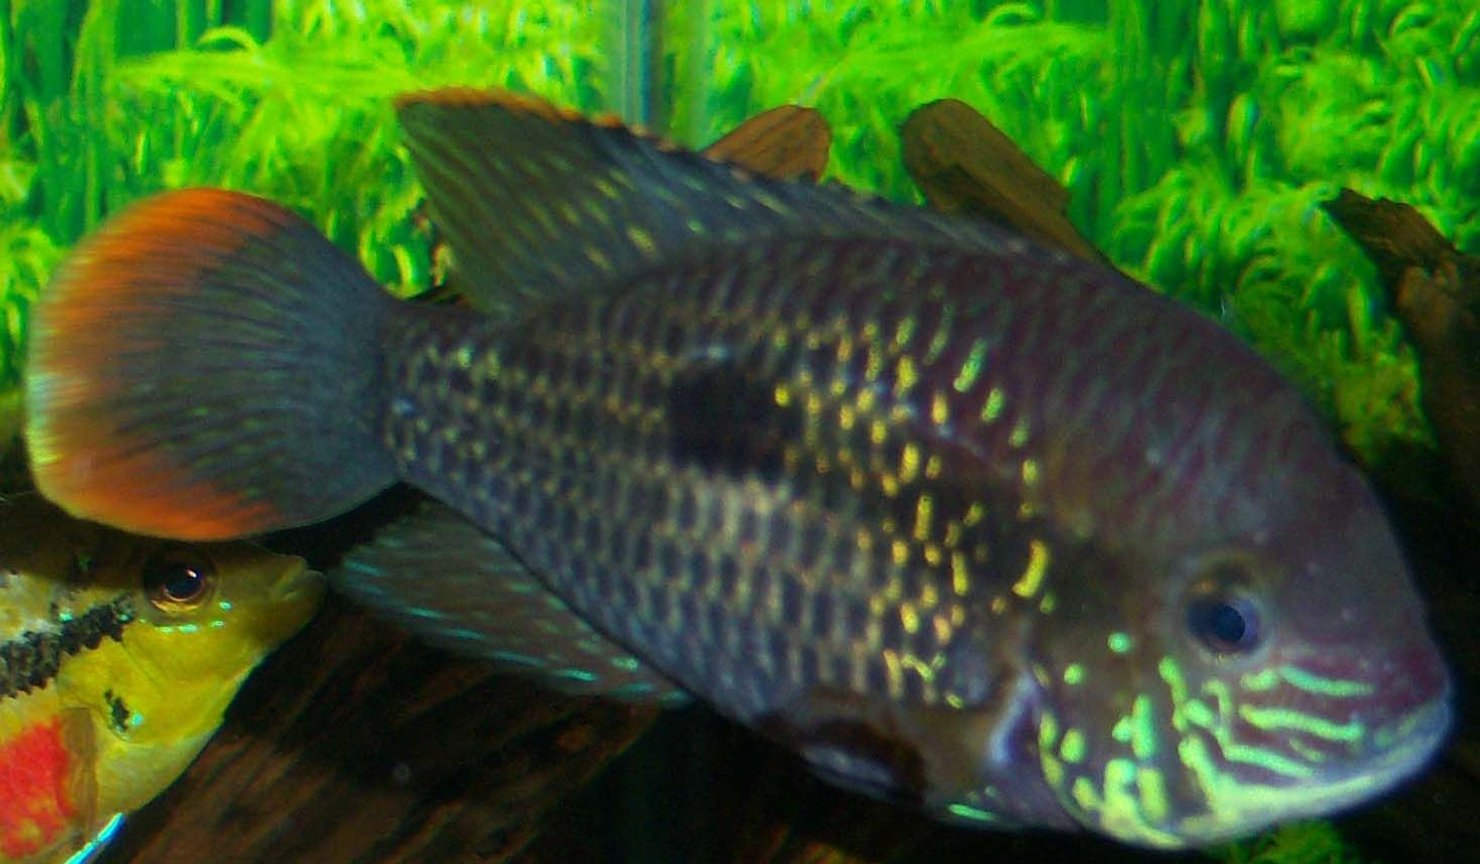 freshwater fish - aequidens rivulatus - green terror stocking in 150 gallons tank - 5 inch Green Terror Cichlid